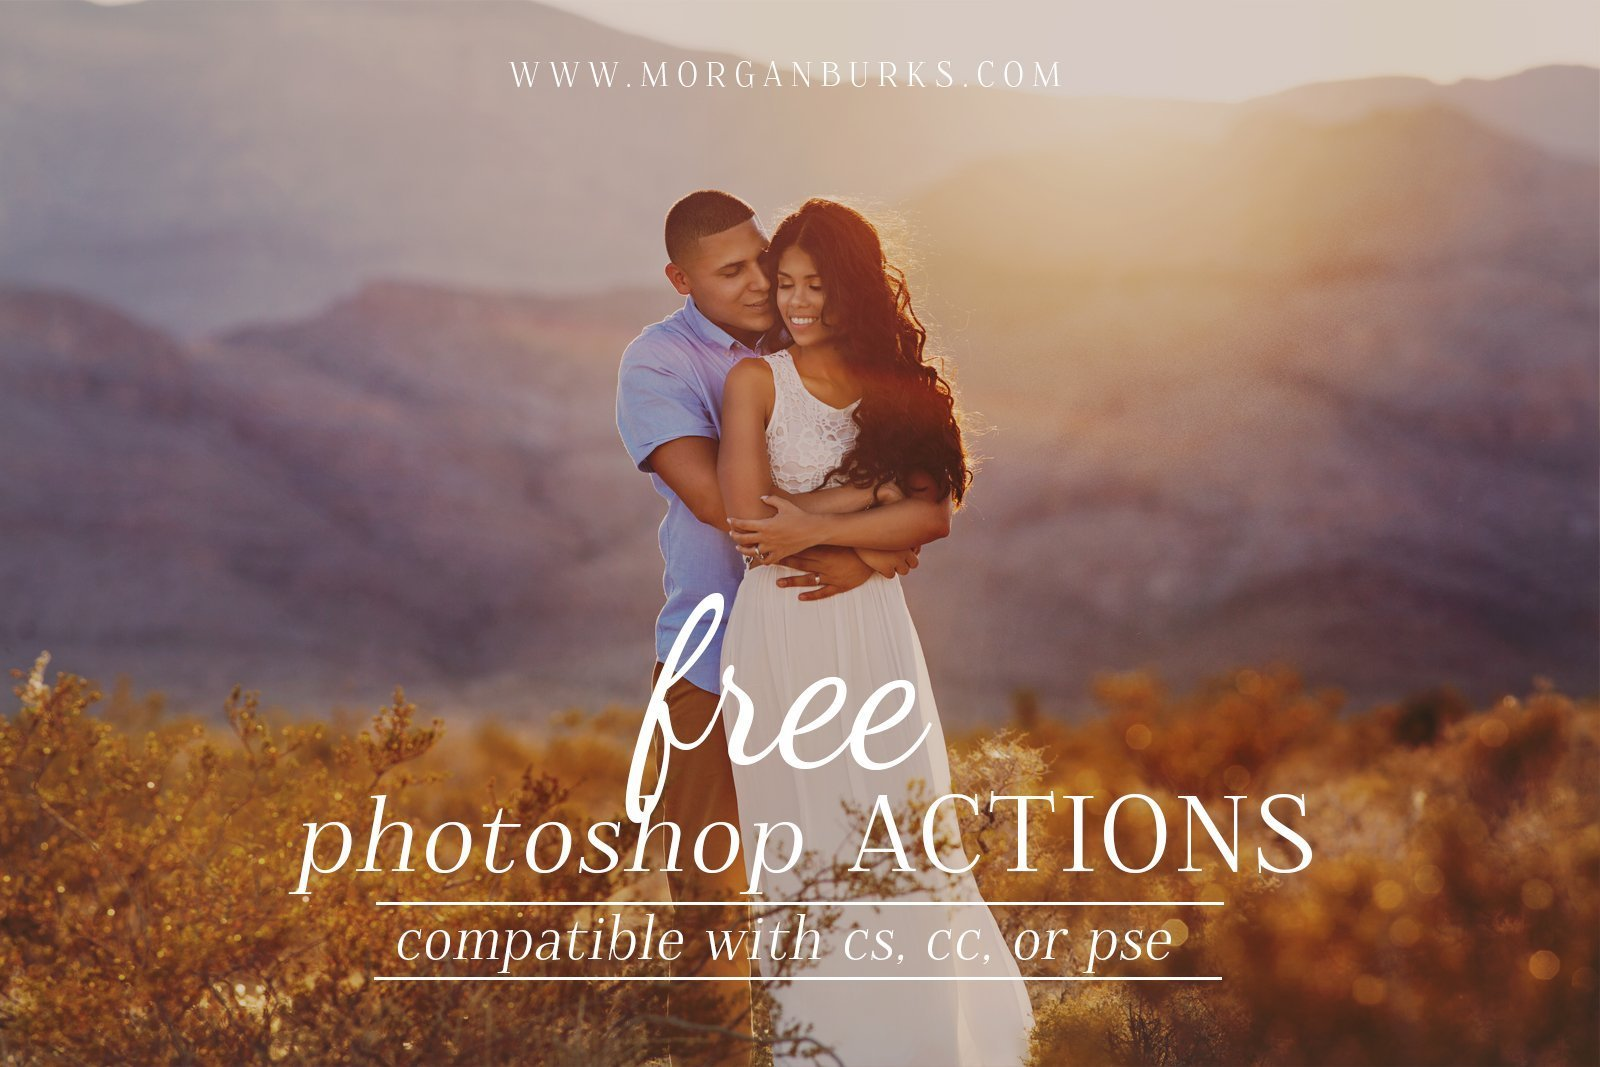 Photographers: Enhance your images with these Free Photoshop Actions! | Find more free editing products for photographers at www.morganburks.com